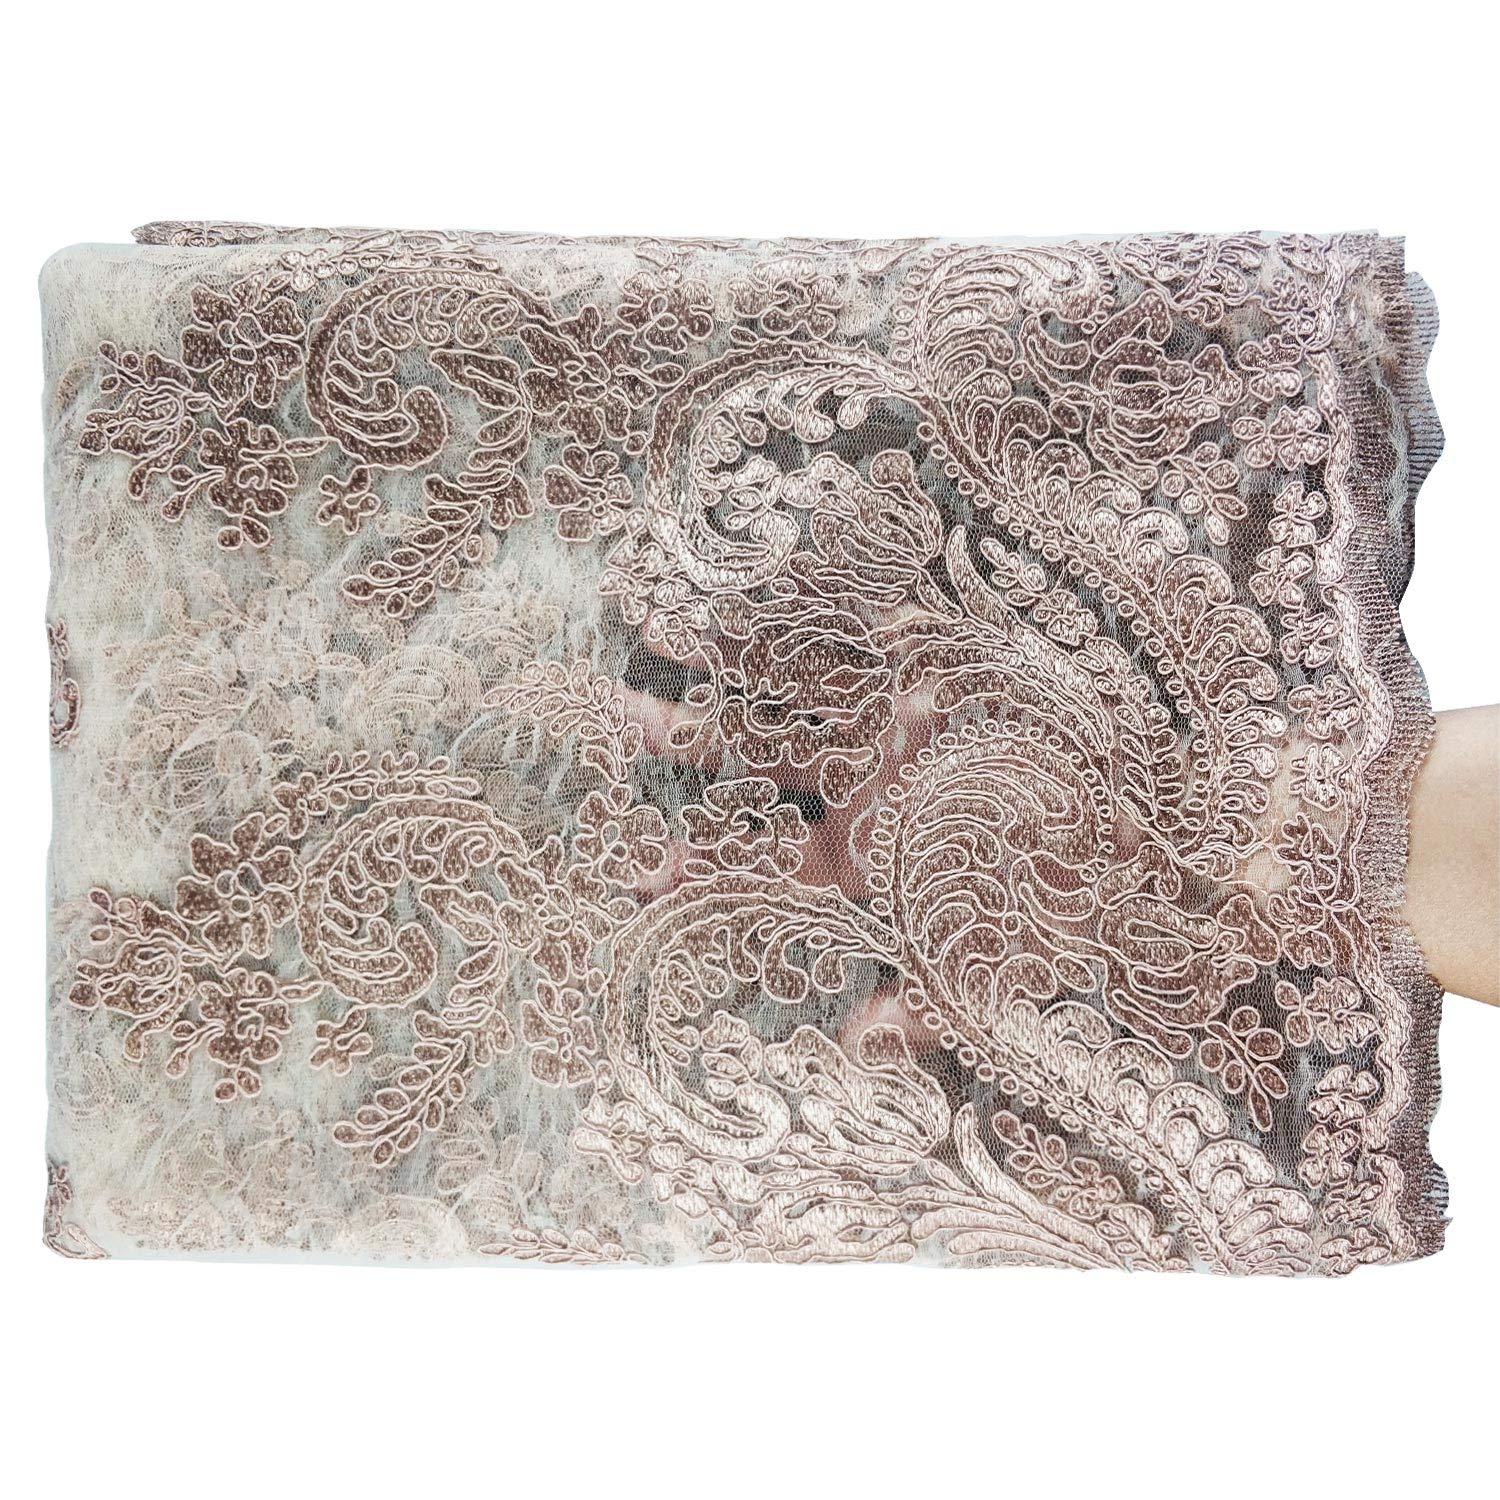 NJHG Lace Fabric 5 Yards Net Cord Embroidery with Pearls Attached by Hand Tulle Fabric Embroidered with Cord Lace and Hand Attached Pearls for Party Wedding /…